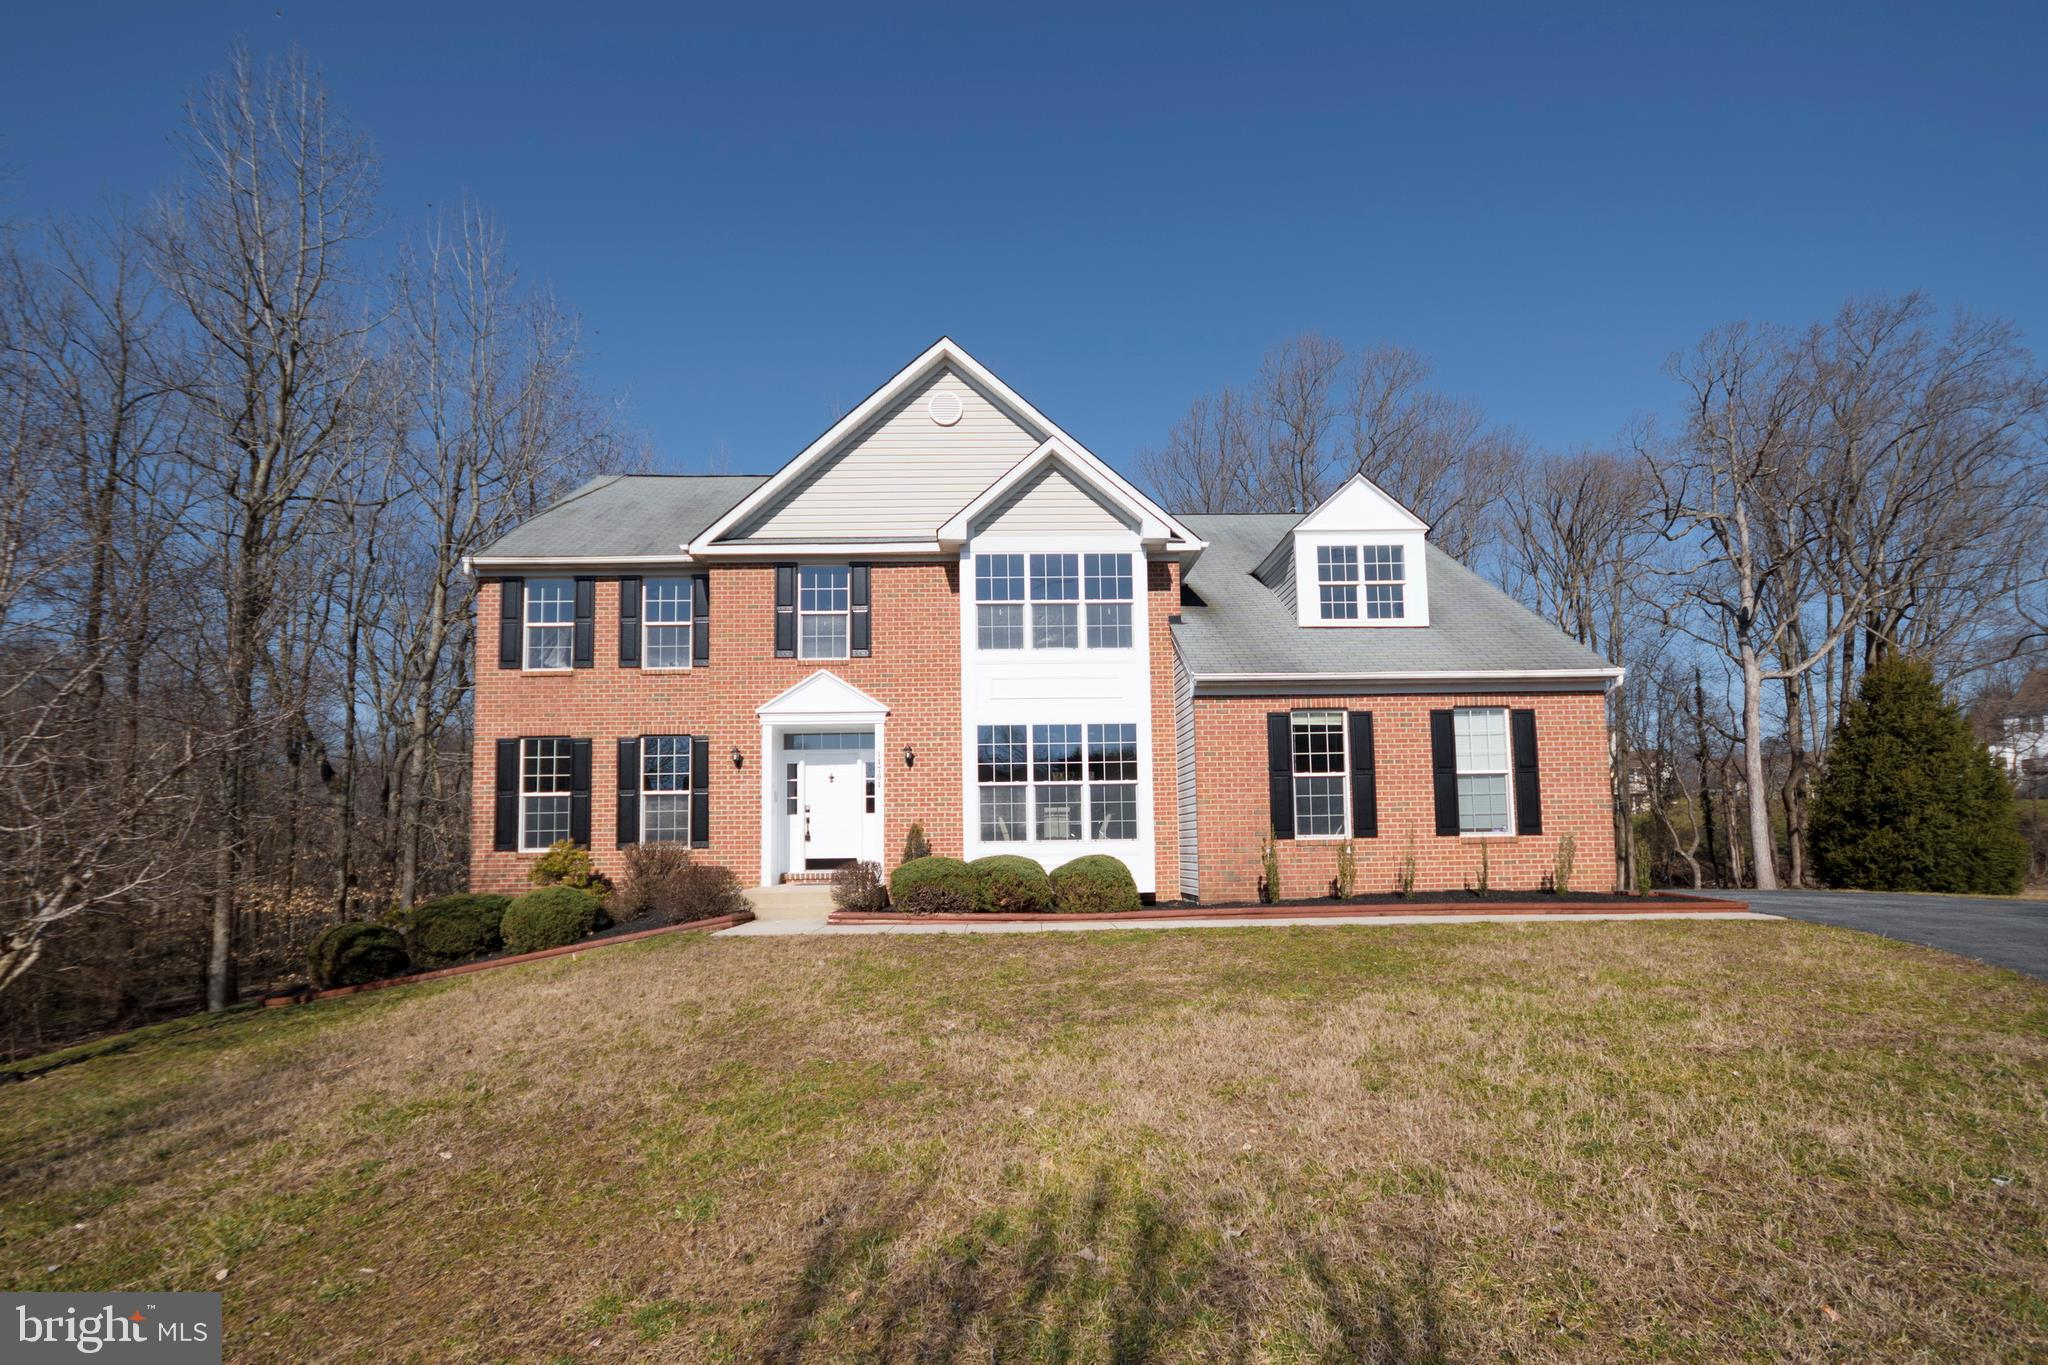 14704 JOVIAL COURT, BOWIE, MD 20721